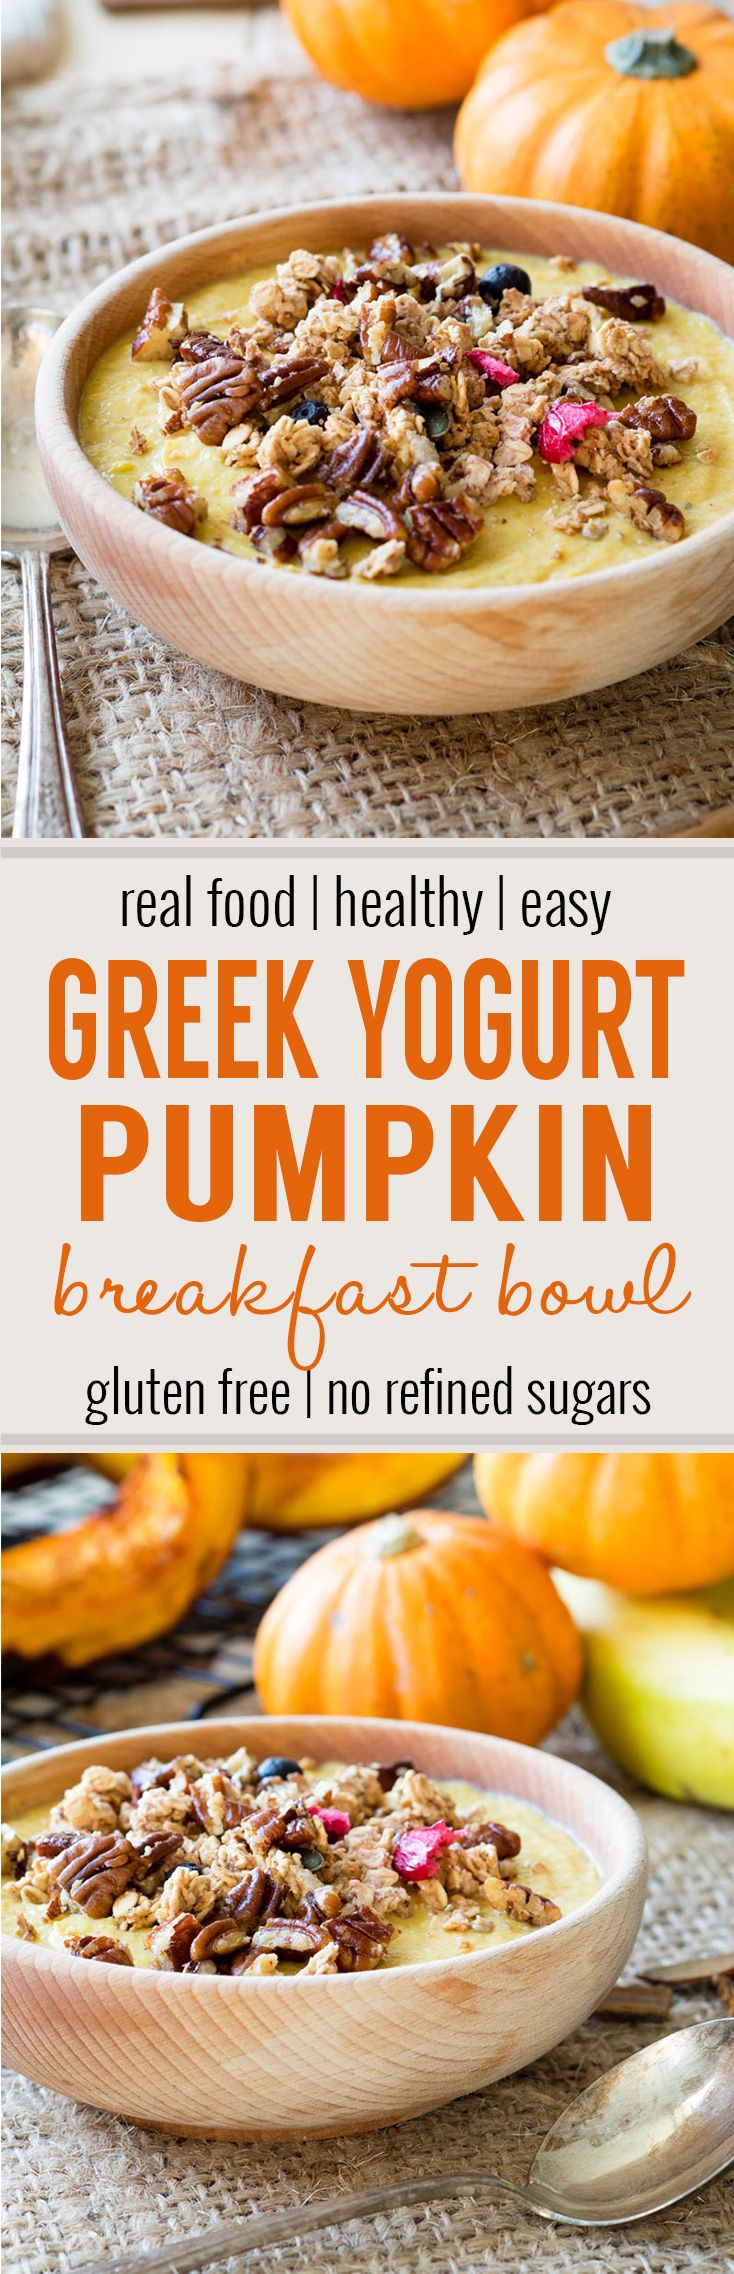 Pumpkin Greek Yogurt Breakfast Bowl (GF) - A healthy breakfast bowl that is made with Greek yogurt, real roasted pumpkins, and bananas. Naturally sweet, with no refined sugars. A delicious and quick breakfast for the fall.